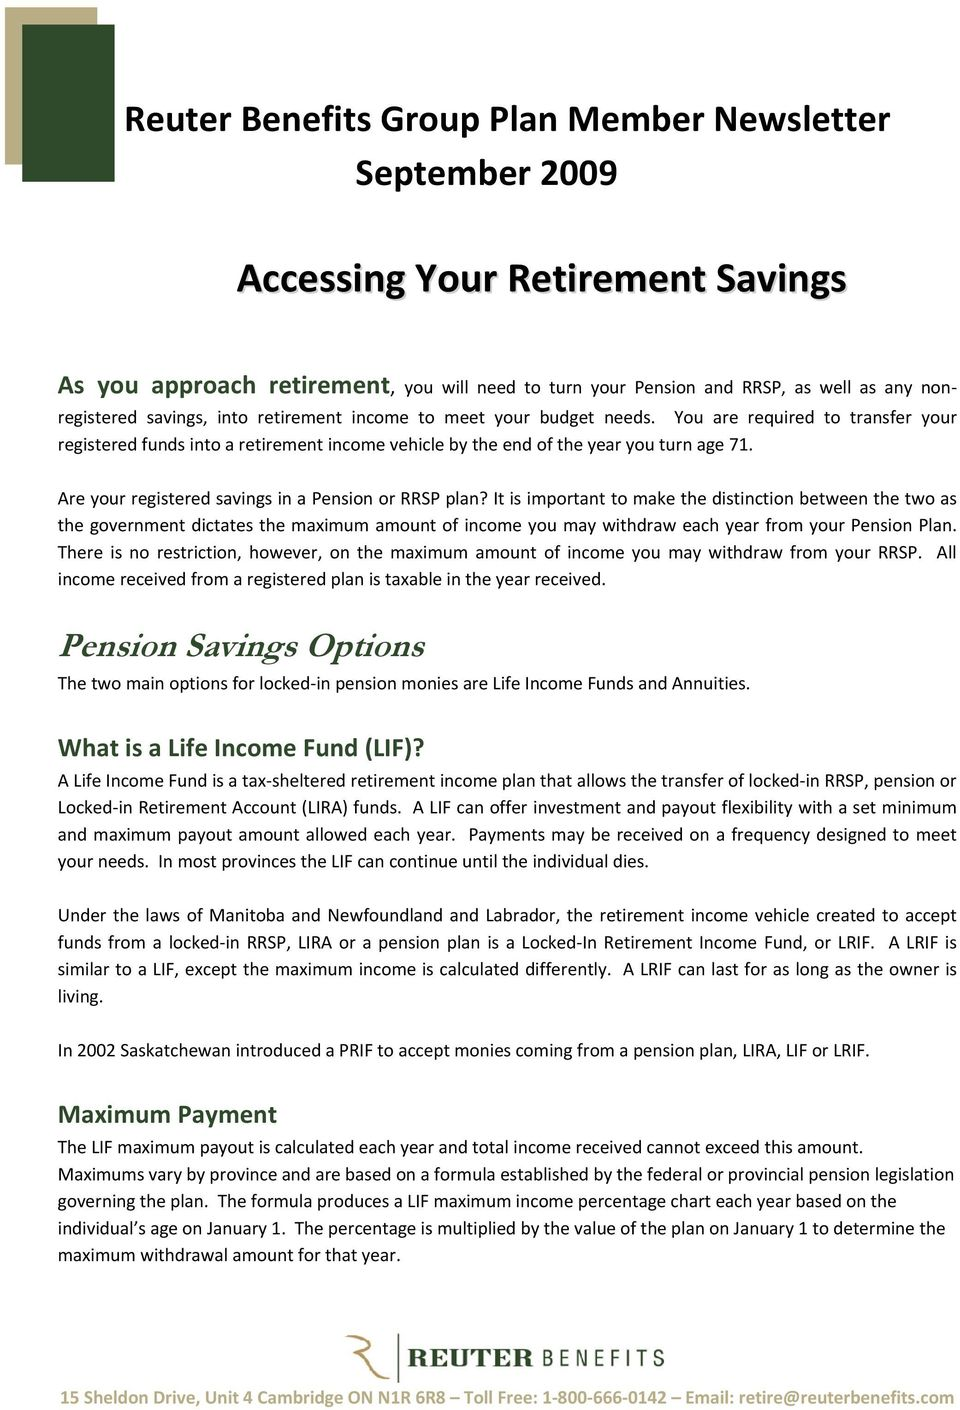 Are your registered savings in a Pension or RRSP plan?